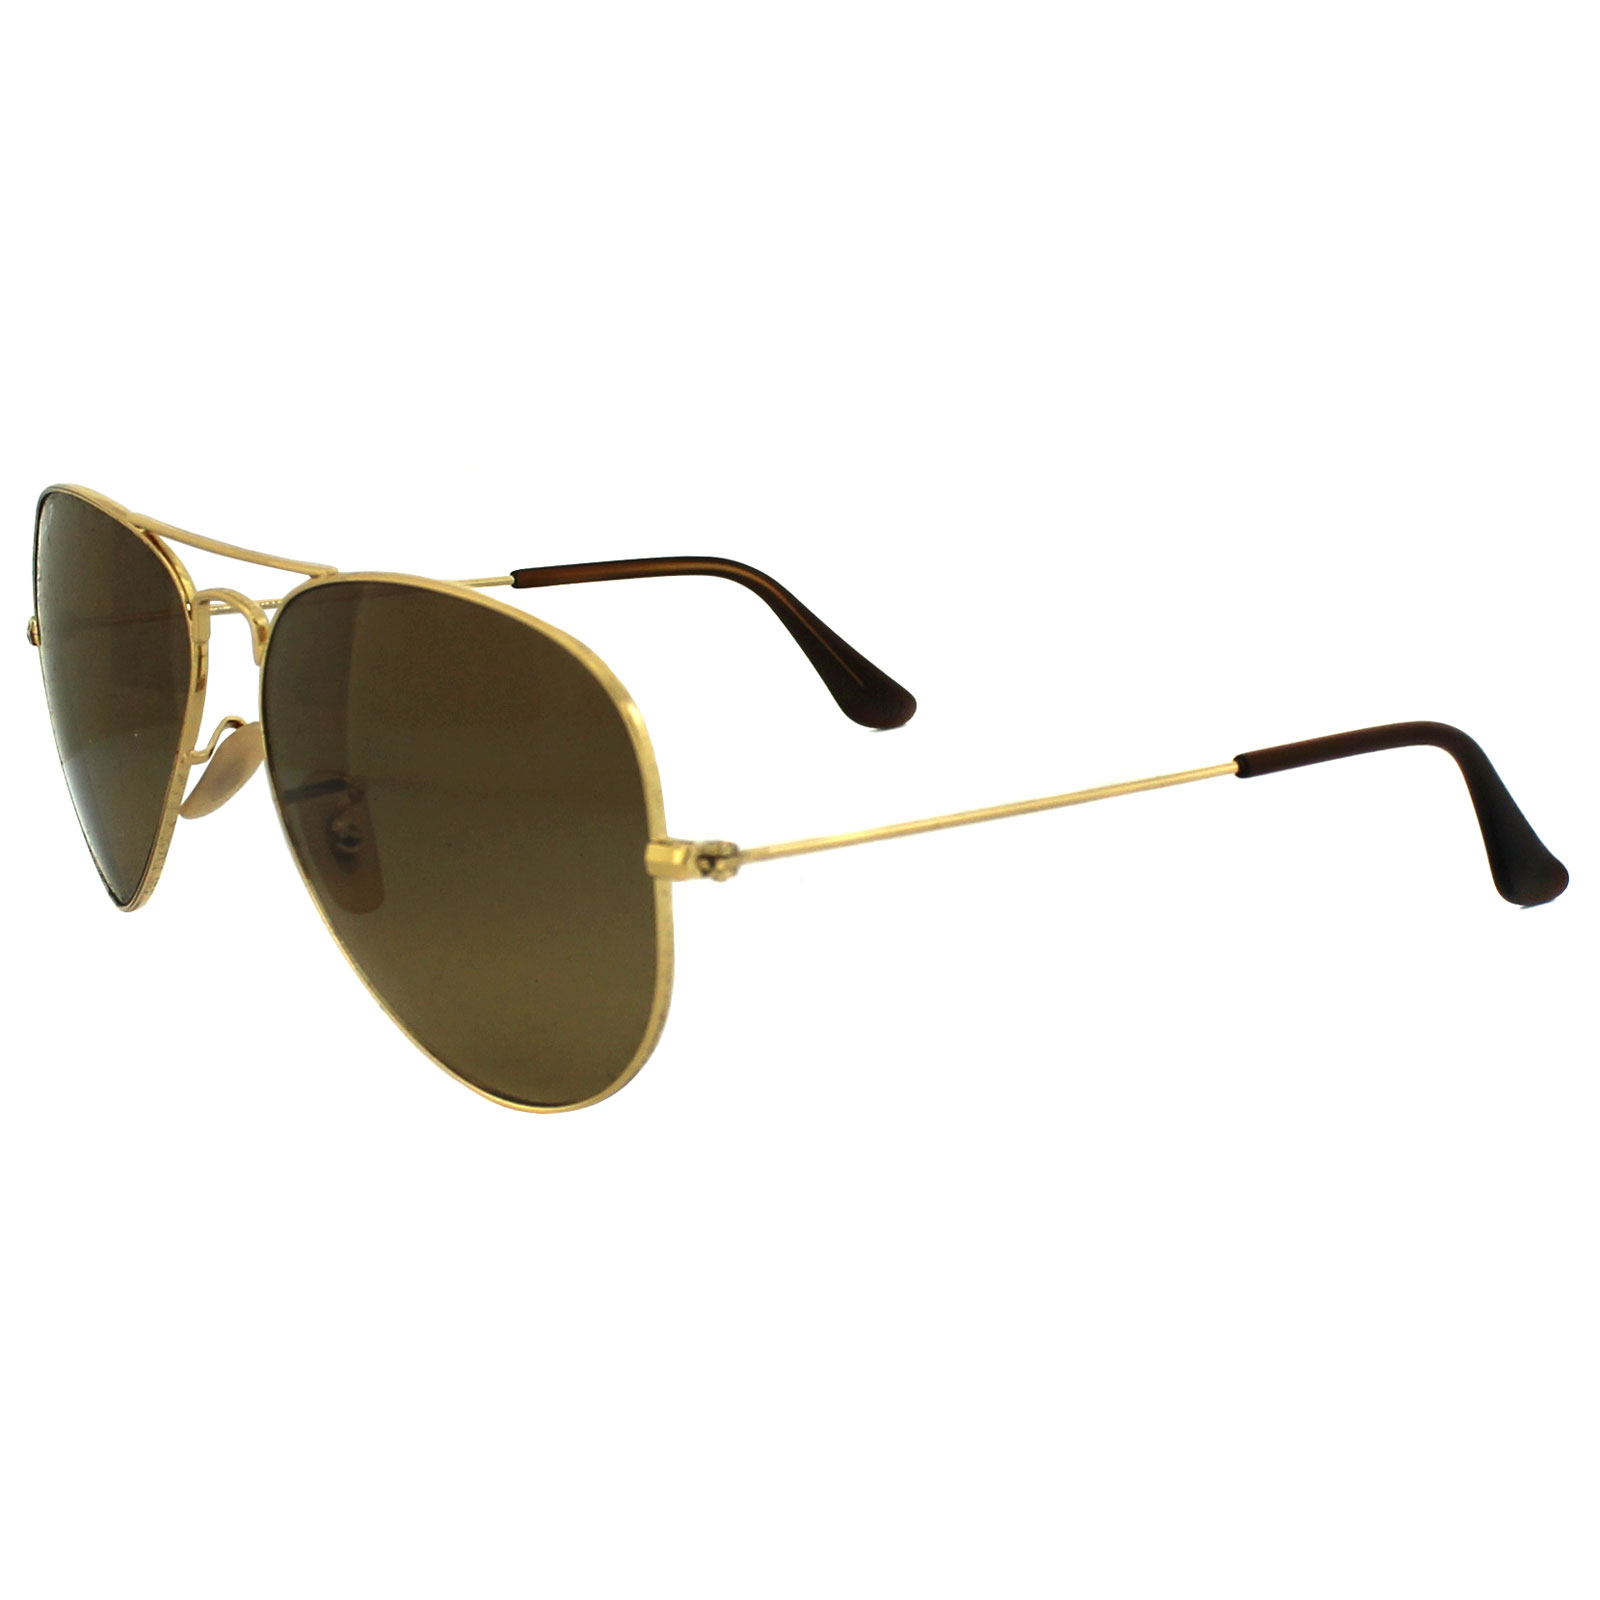 aviator sunglasses polarized 1knc  aviator sunglasses polarized